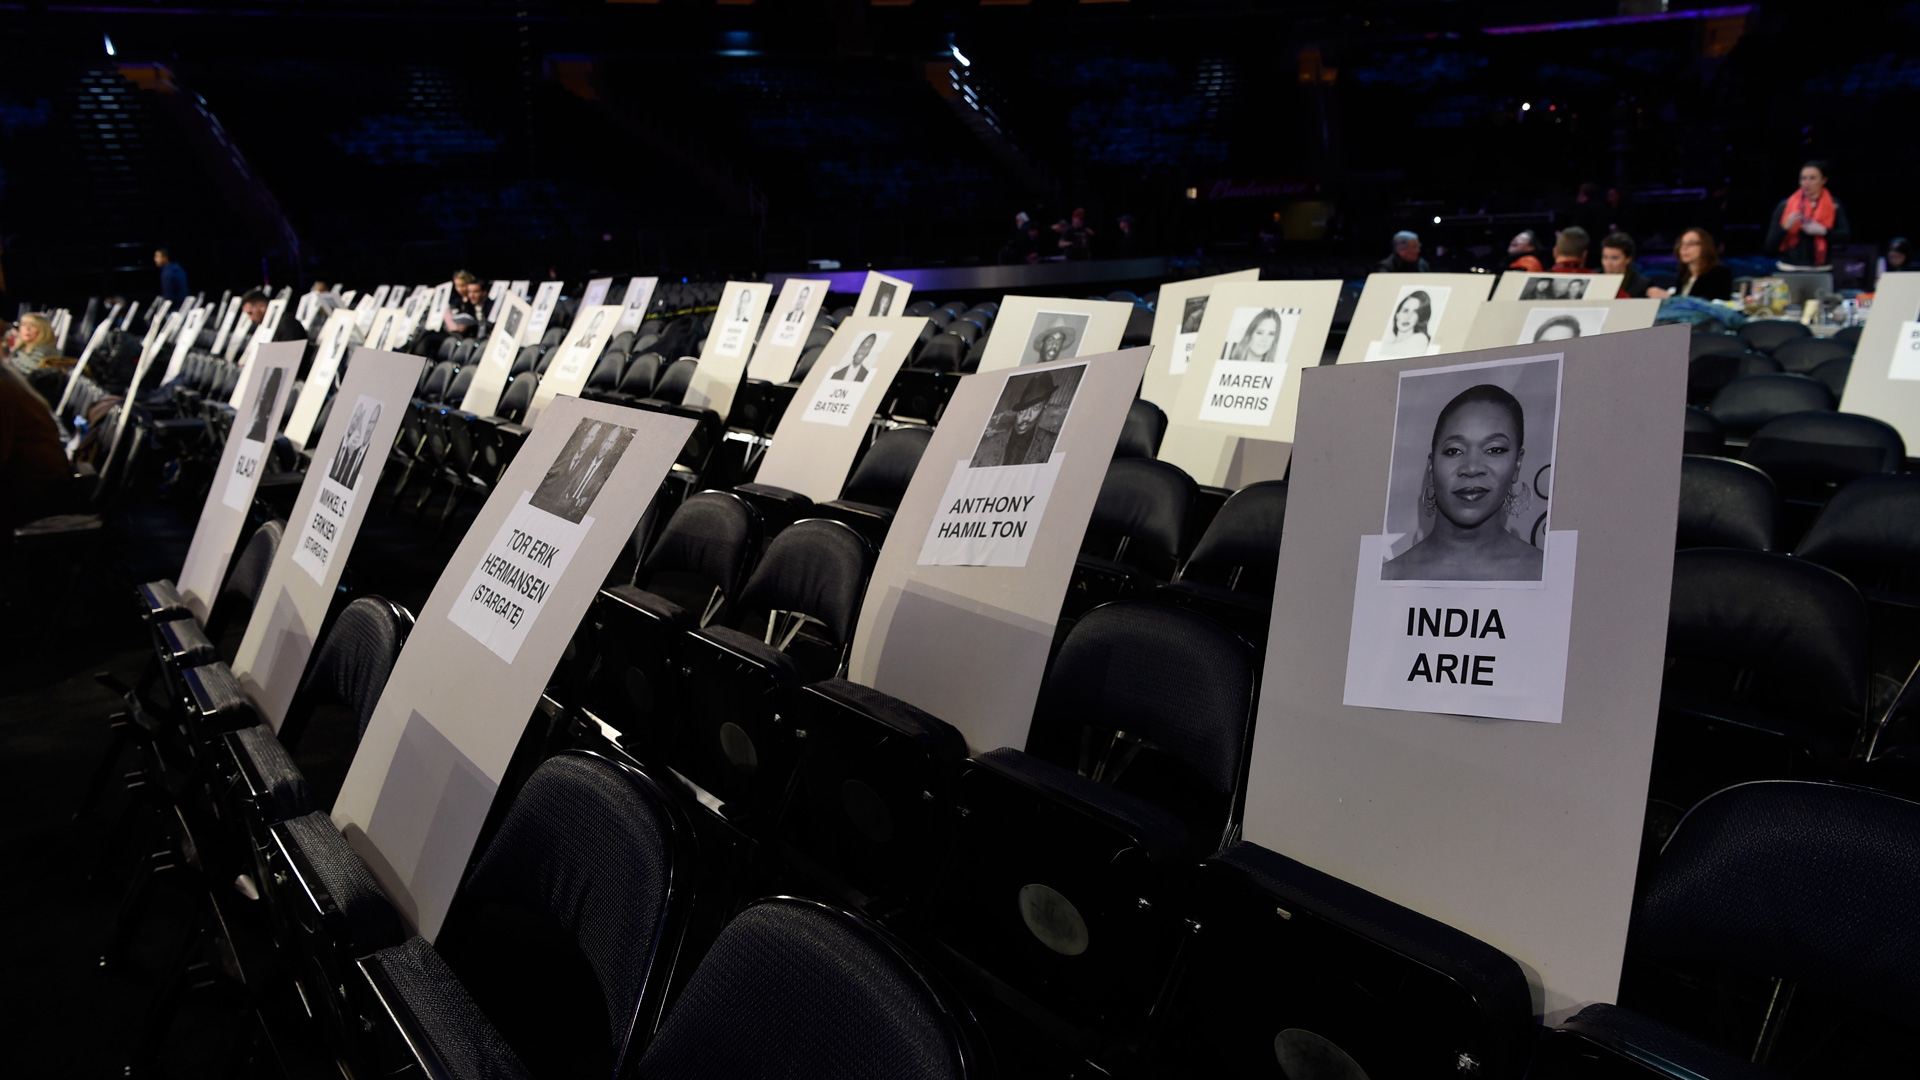 GRAMMY Award-winning artists India.Arie and Anthony Hamilton will be seated in this row together.